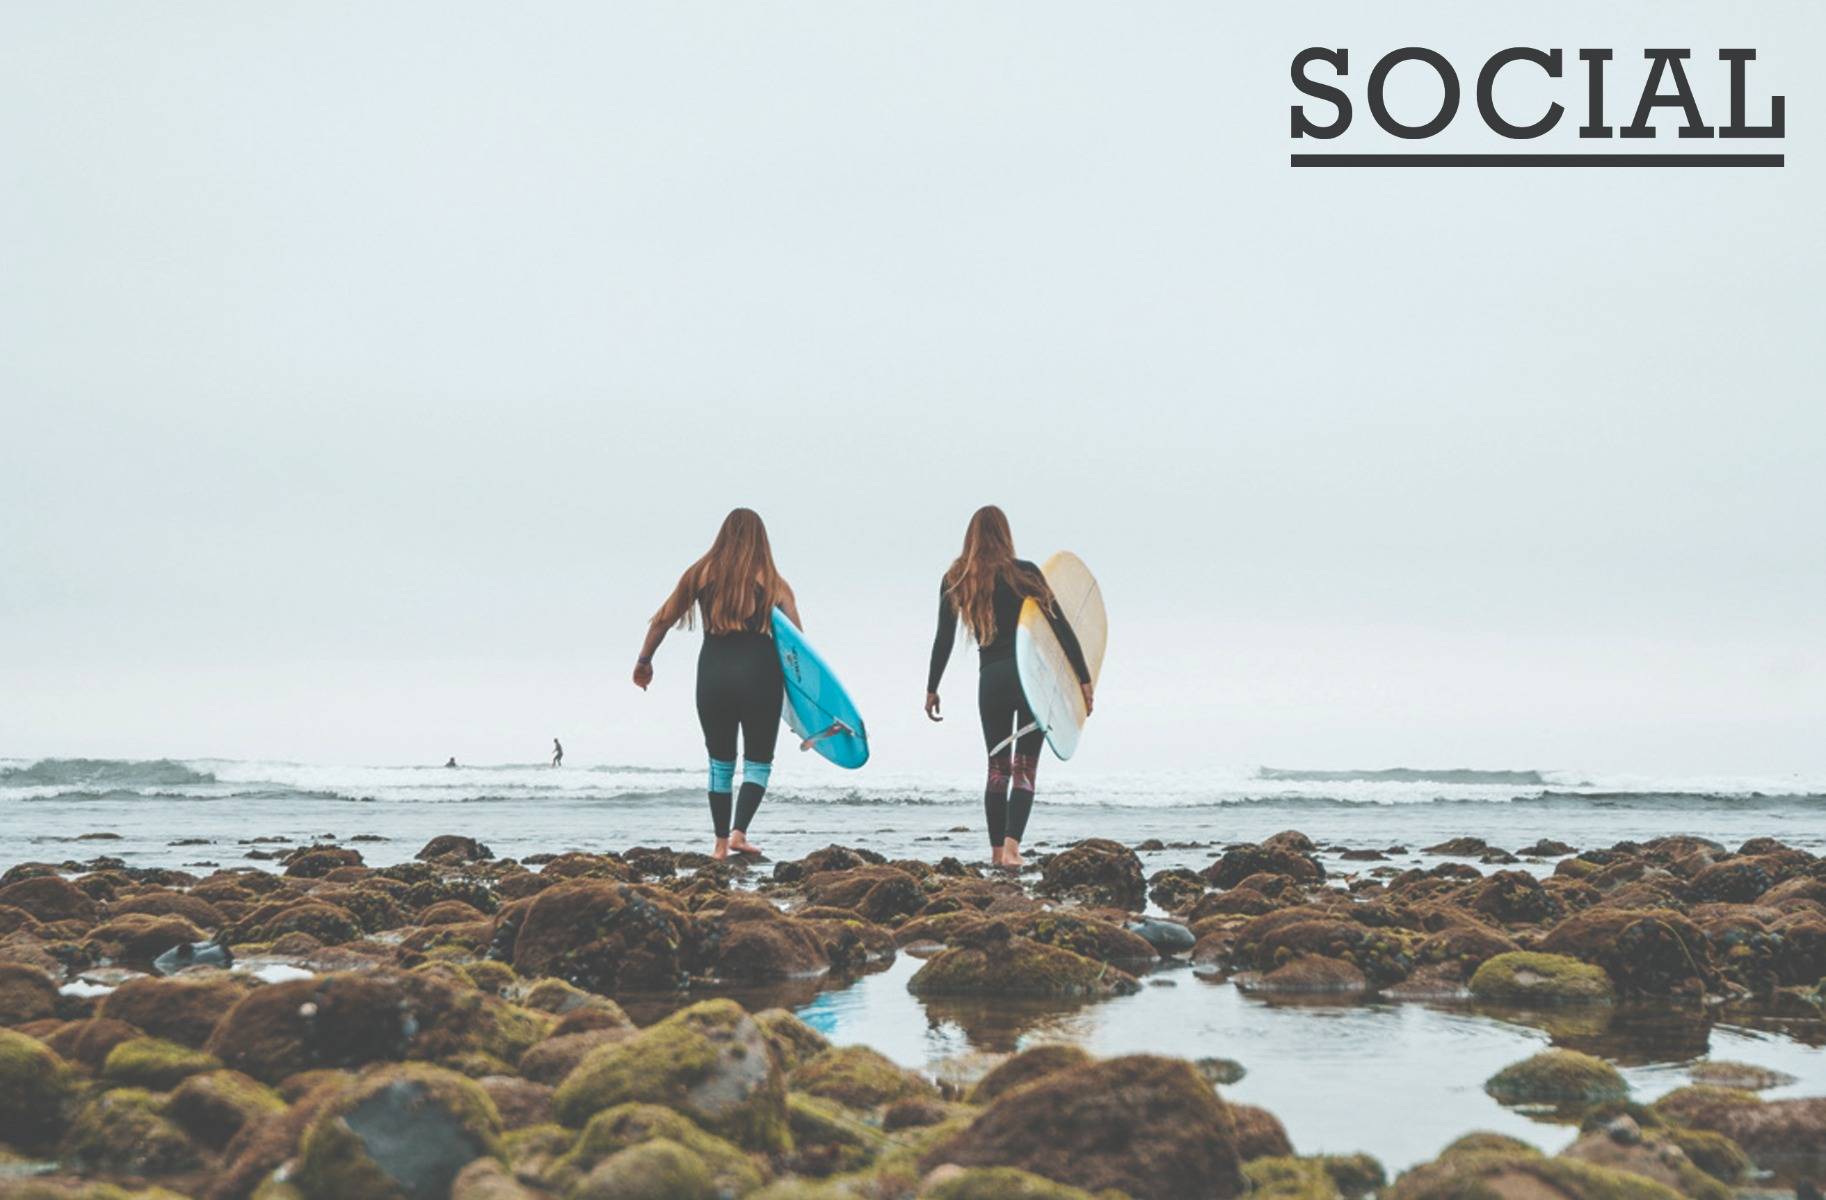 Hobie Surfboards Social Media